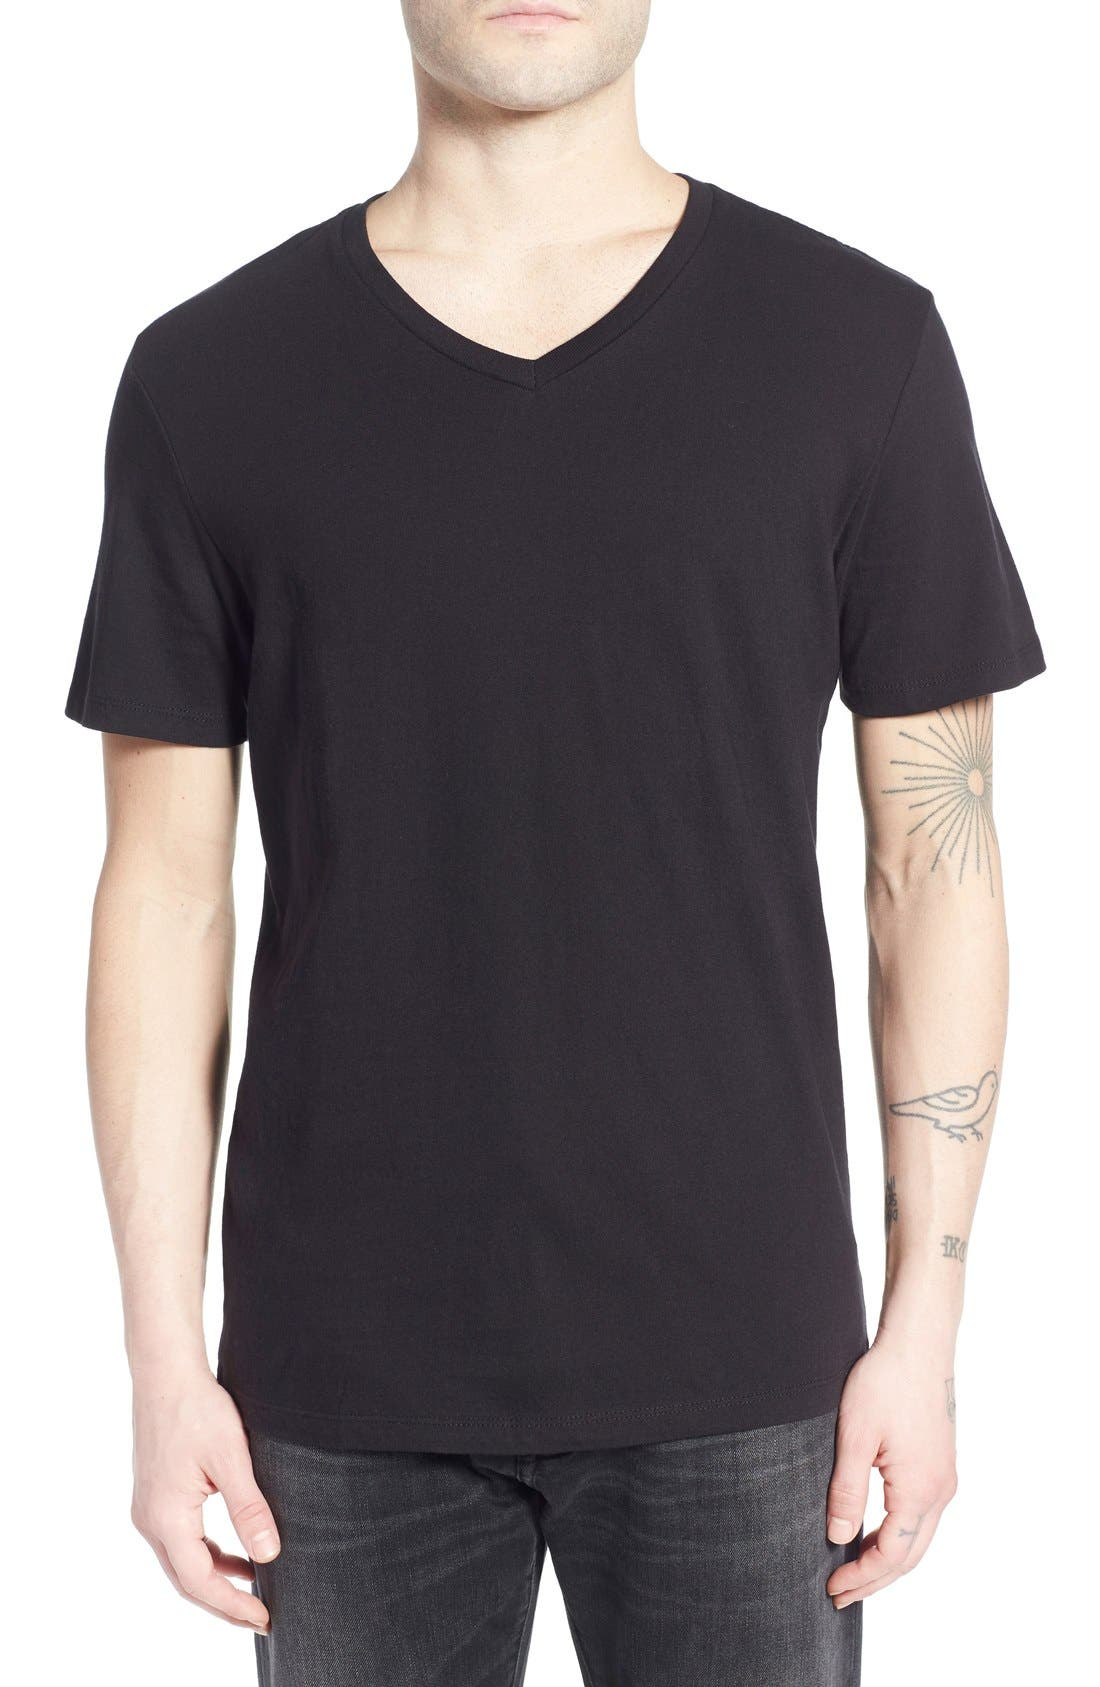 The Rail Slim Fit V-Neck T-Shirt